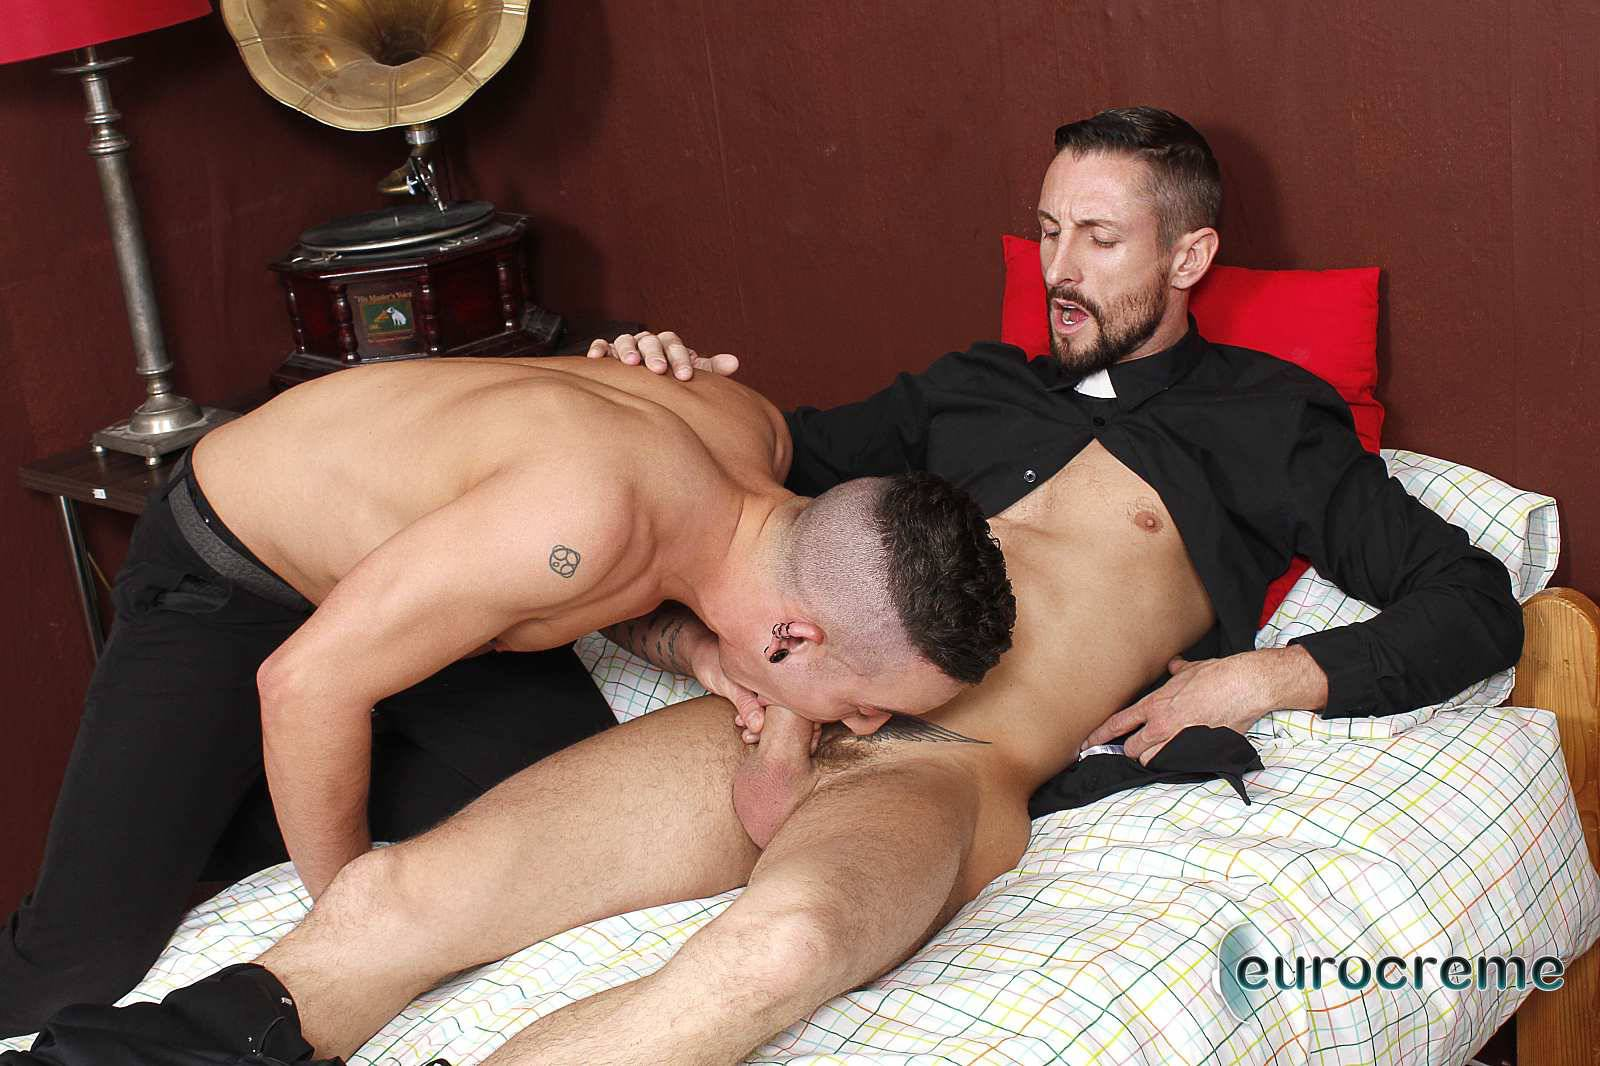 Gay priests porn videos xxx amatuer whore